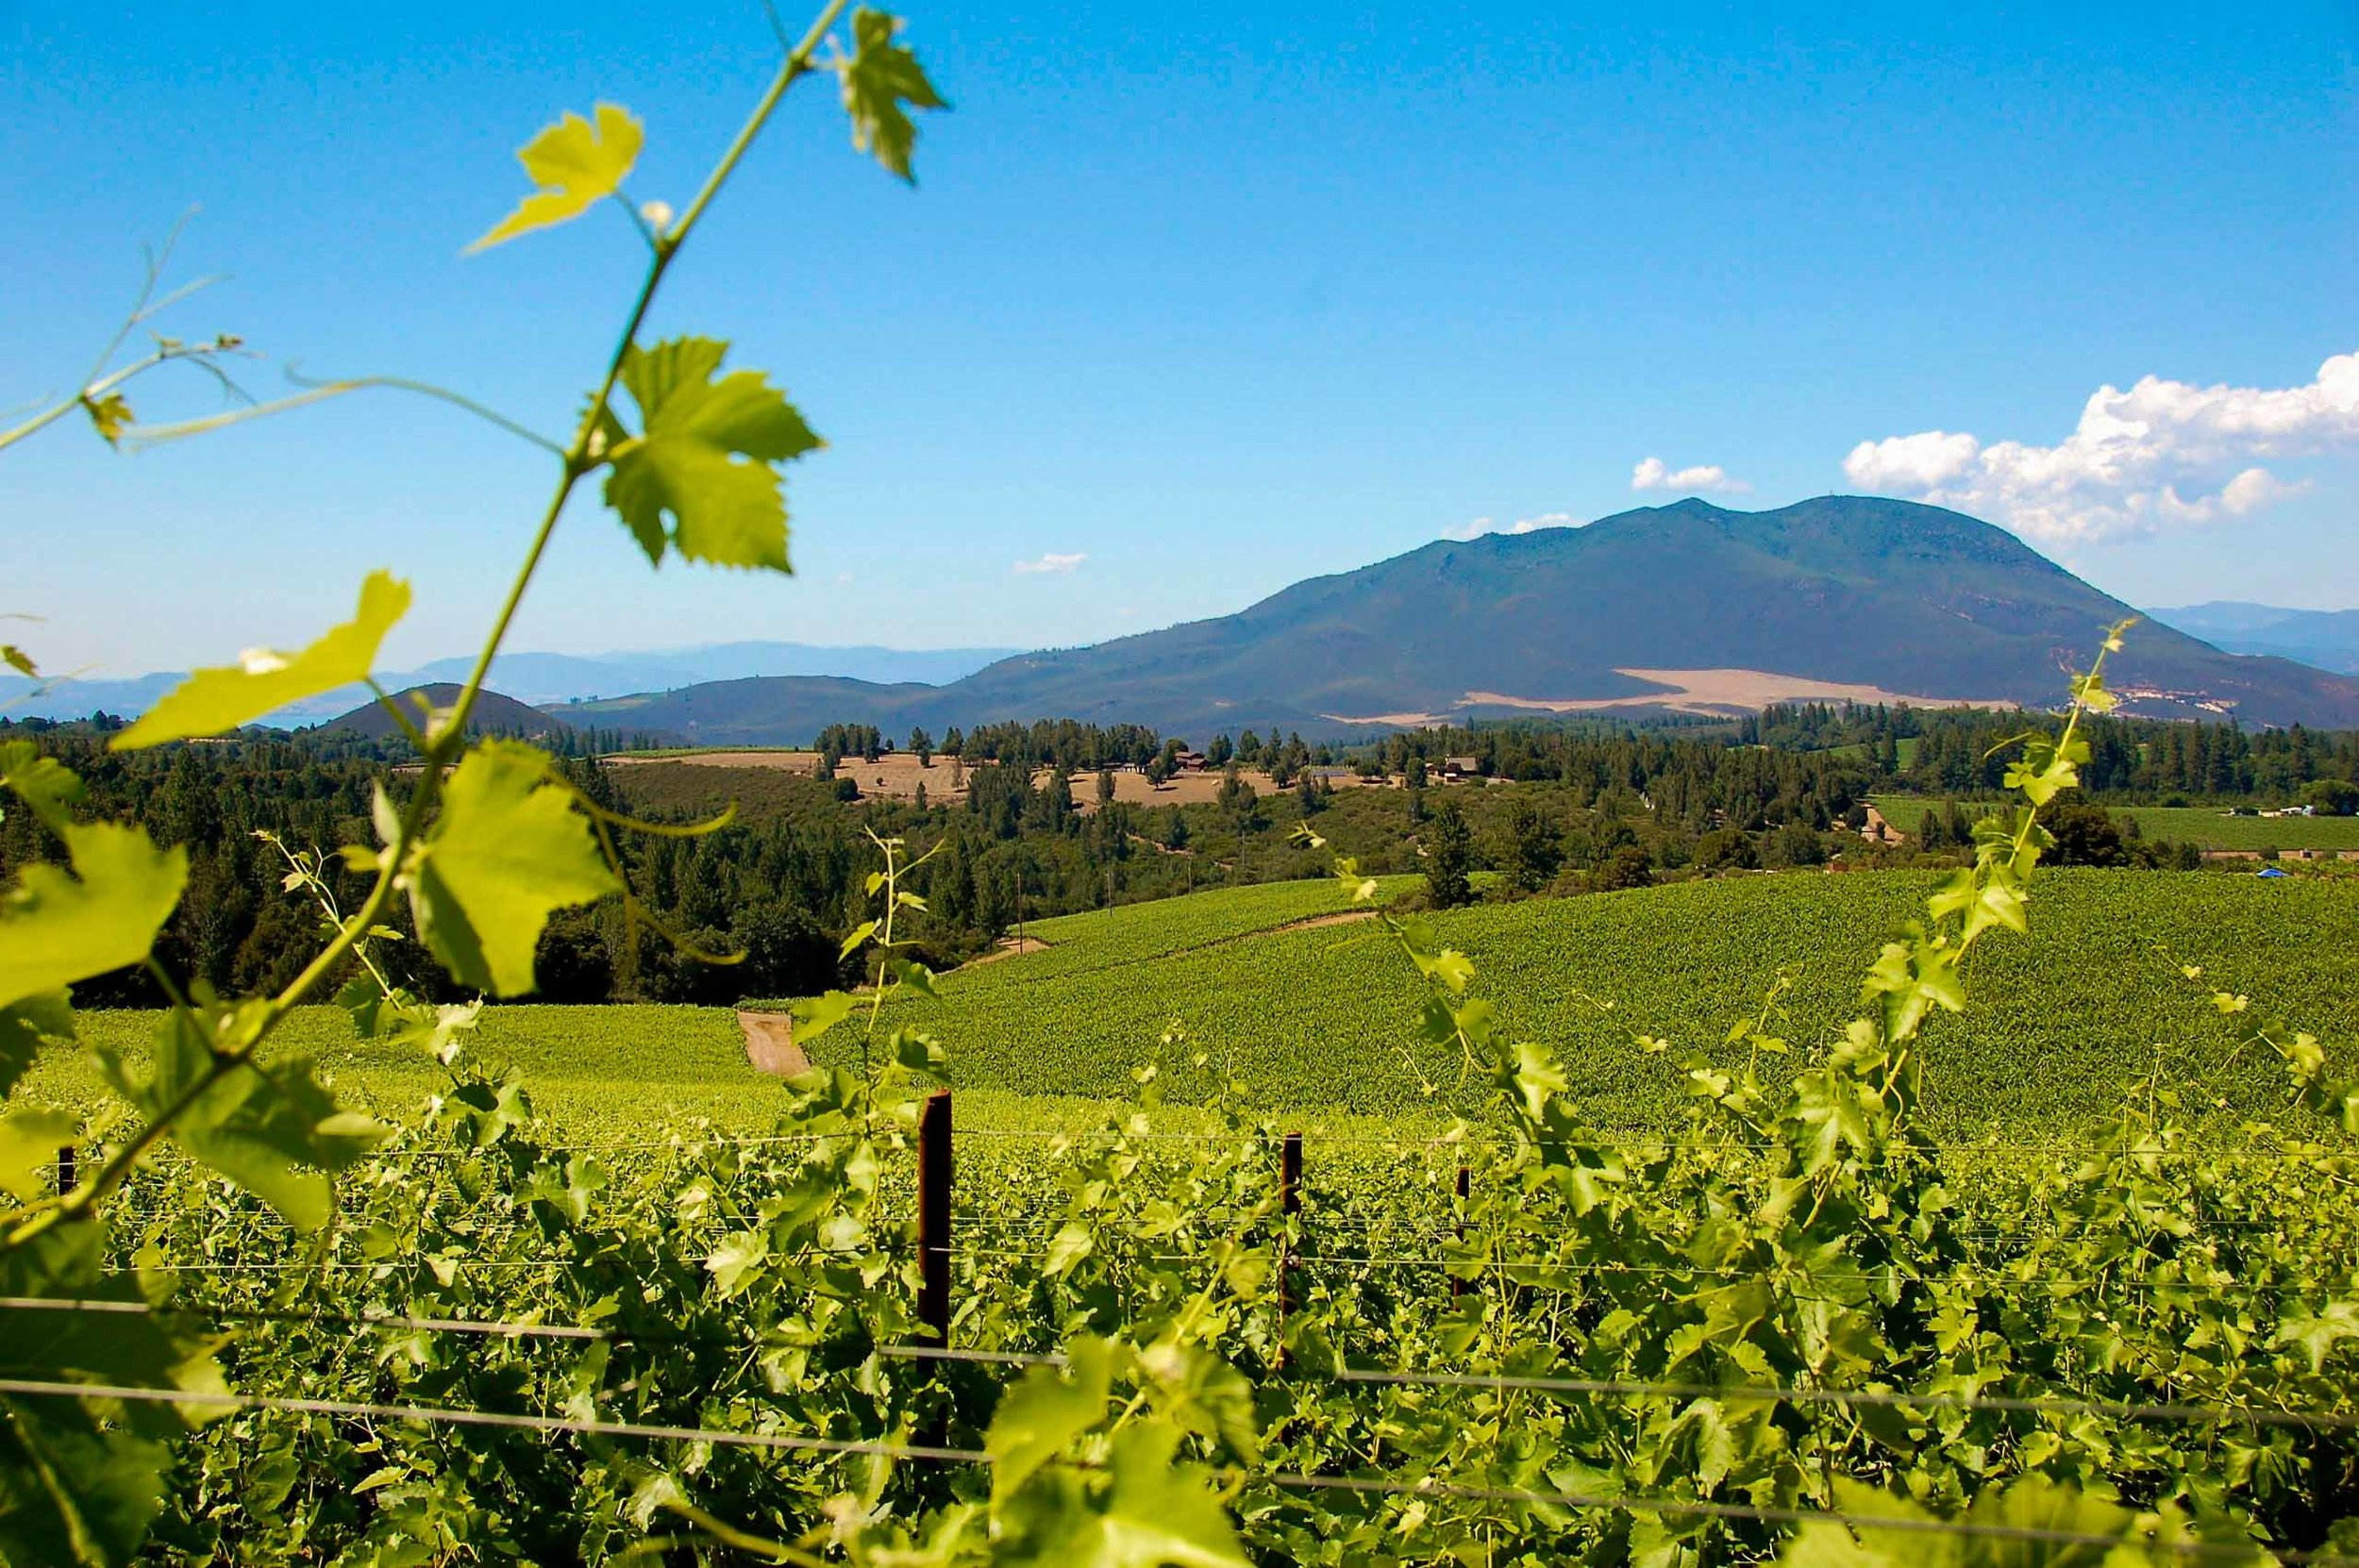 Obsidian Ridge Vineyard under Mt. Konocti-.jpg